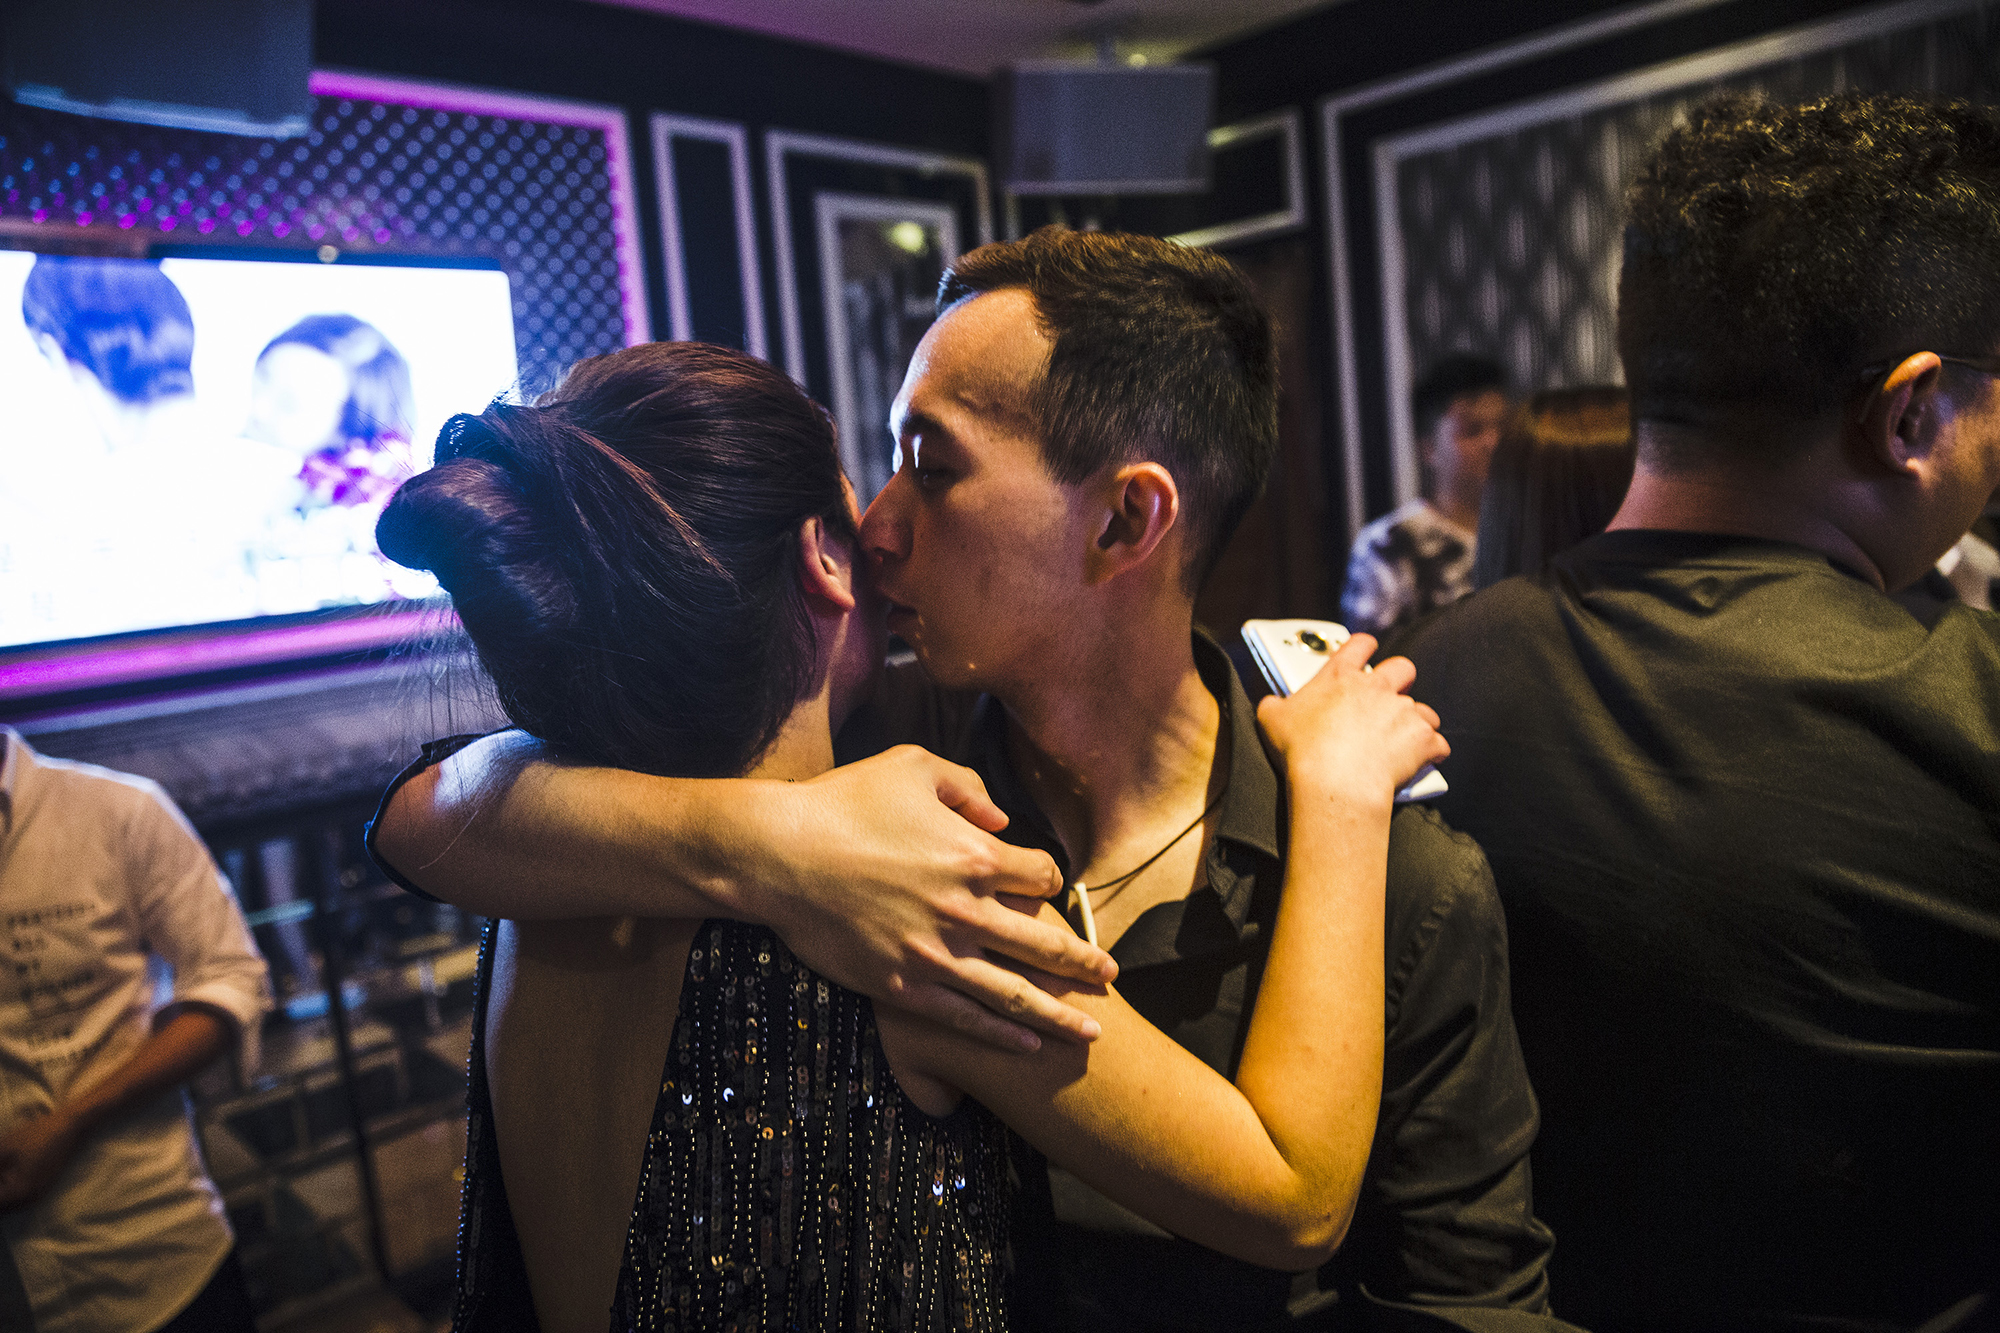 A student kisses a woman he met on the dating app Tantan, at a karaoke parlor, May 18, 2015. The students' final exam involves inviting at least two women they meet in the real world or on Tantan to a party at a karaoke parlor.